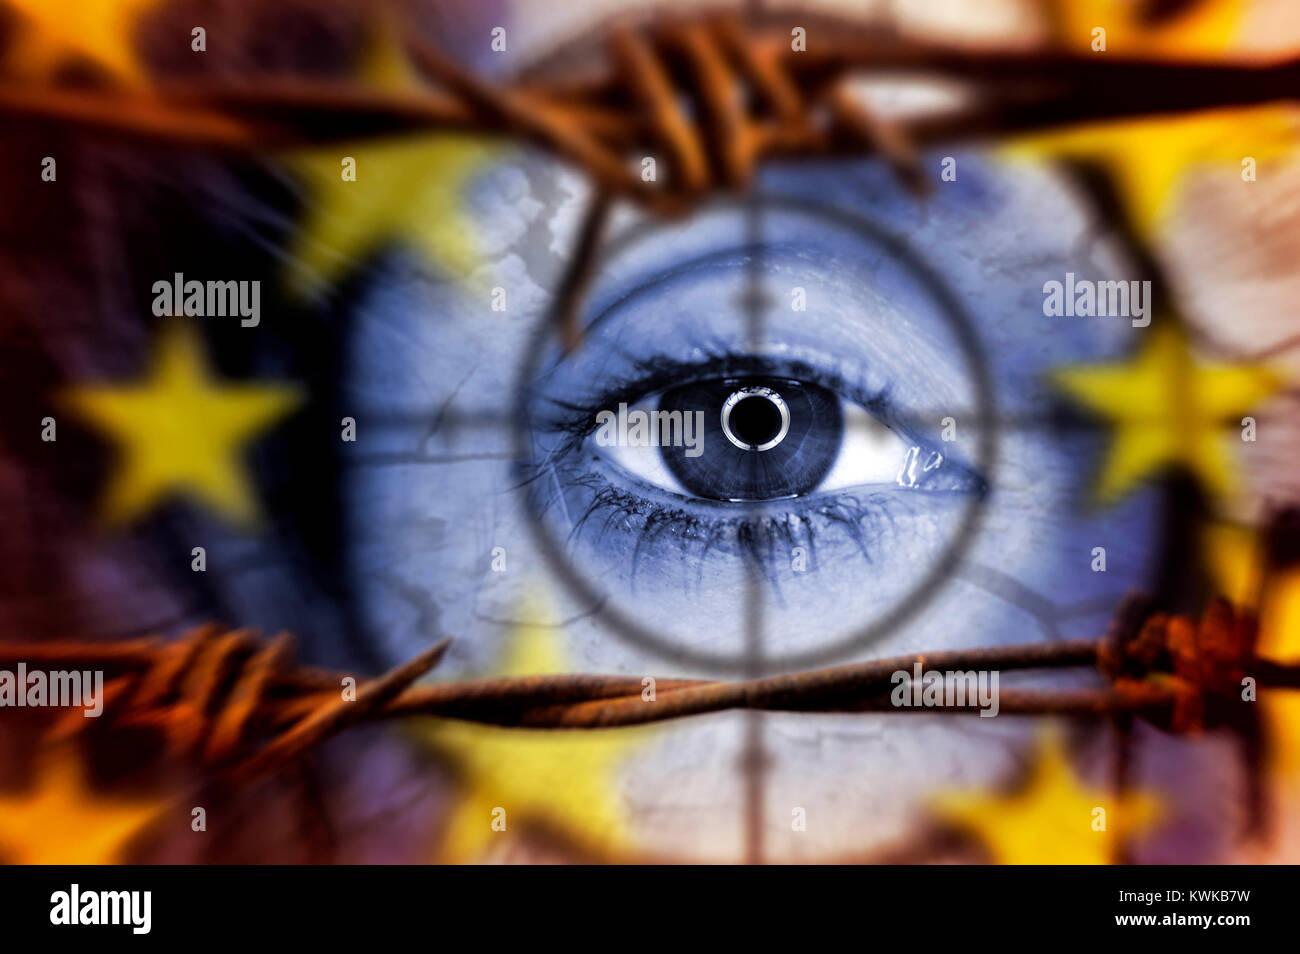 Eye behind barbed wire, symbolic photo refugee's crisis, Auge hinter Stacheldraht, Symbolfoto Fl?chtlingskrise - Stock Image